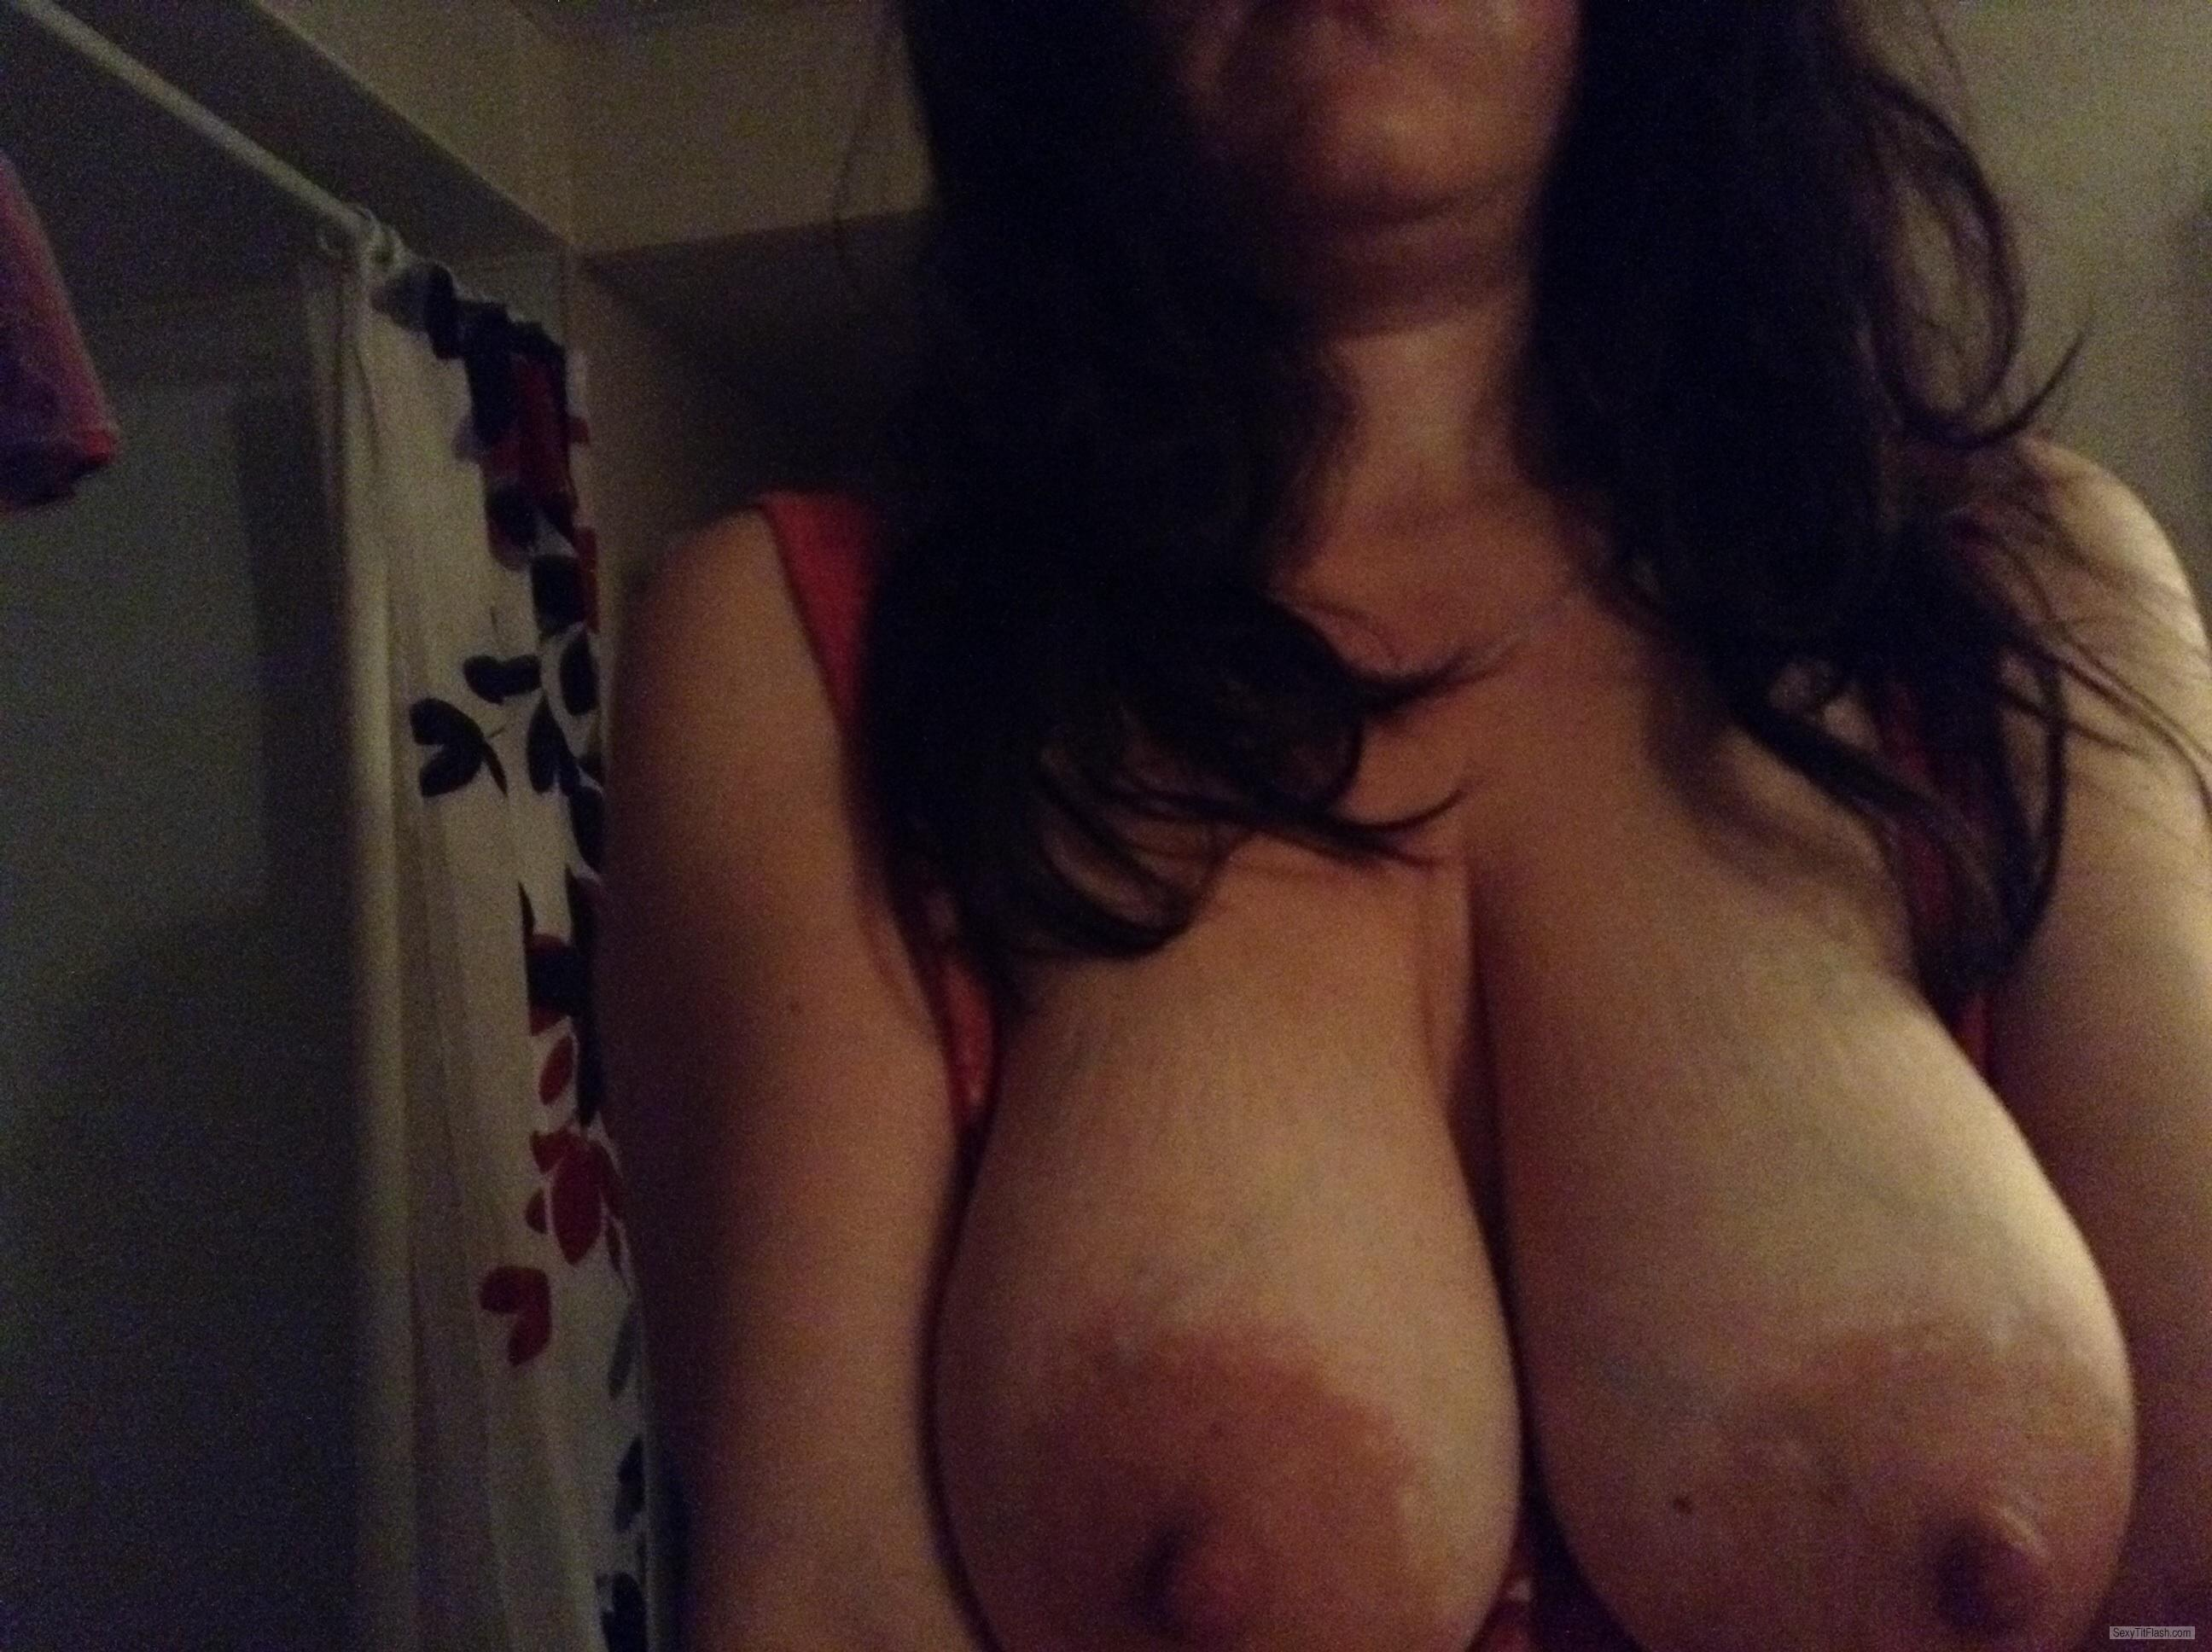 Big Tits Of My Wife Selfie by Tittymom